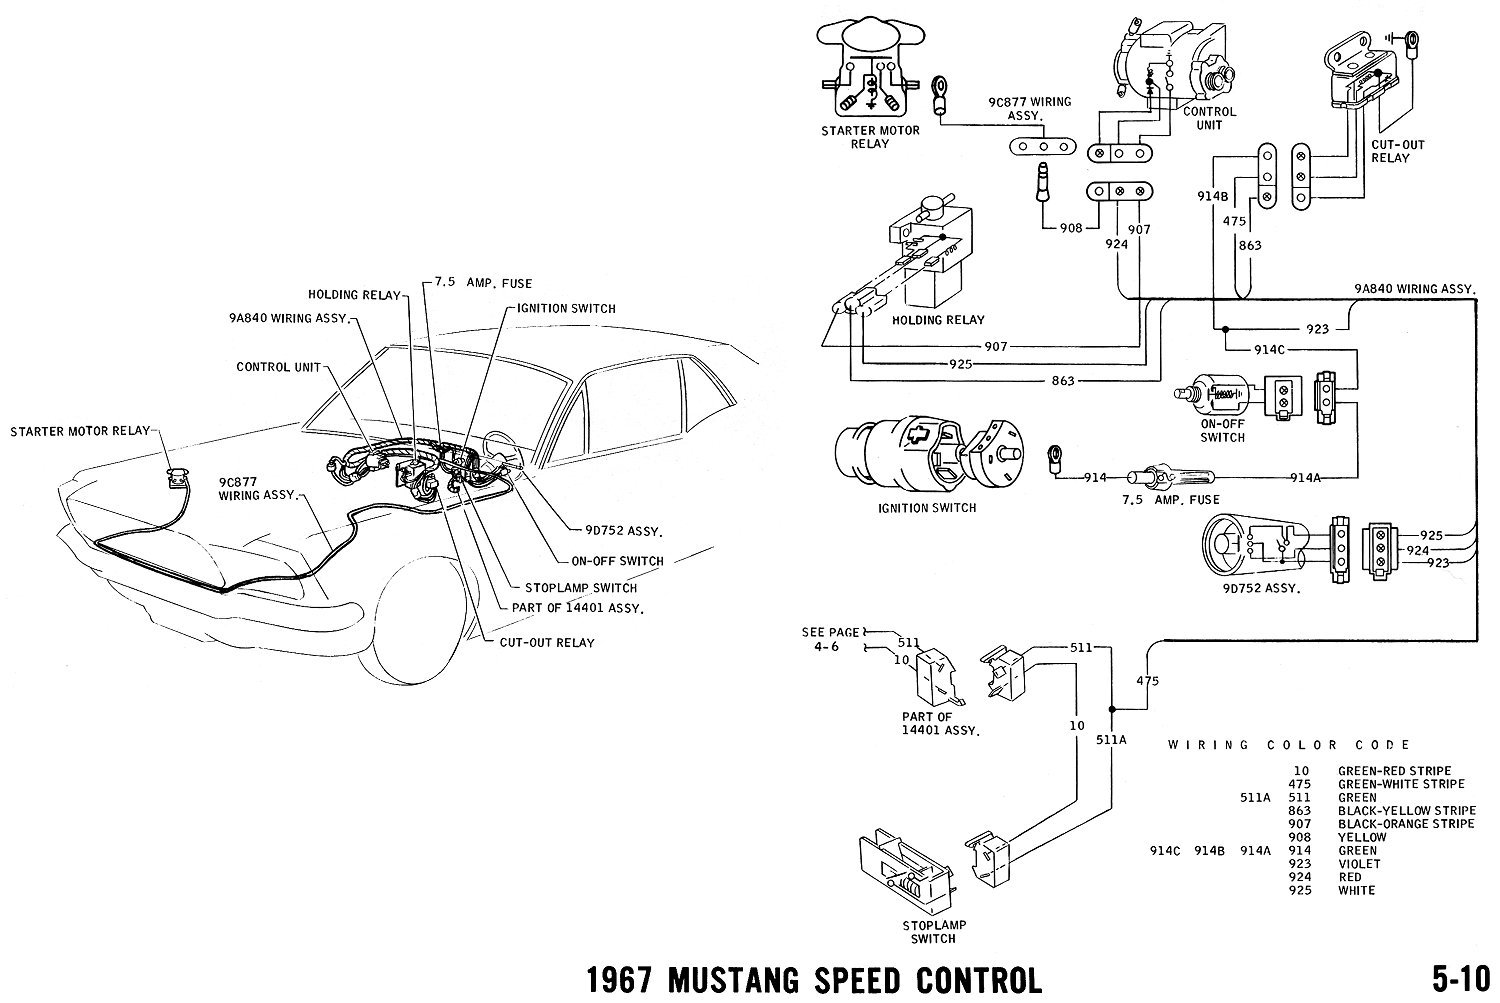 67speed 1967 mustang wiring and vacuum diagrams average joe restoration 1965 Mustang Restoration Guide at gsmx.co